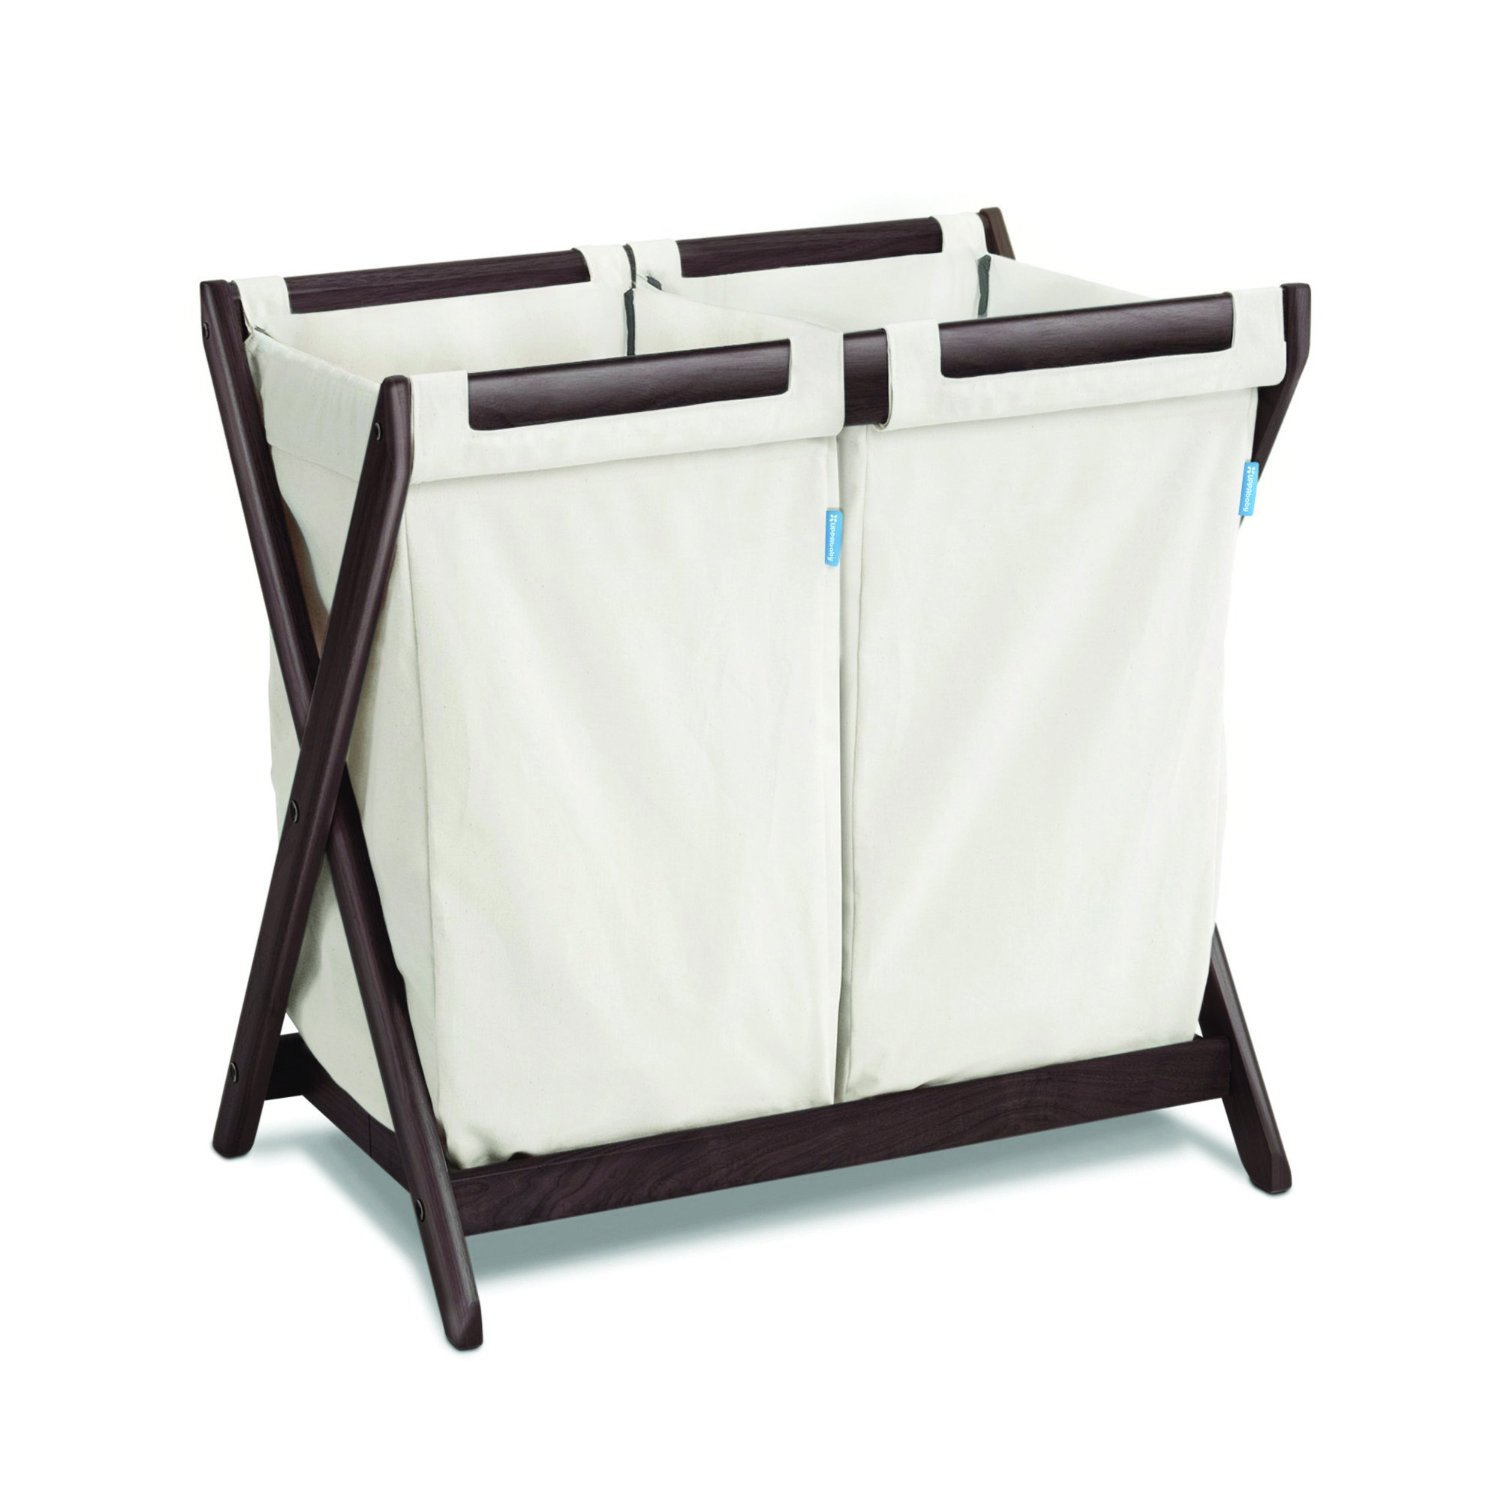 UPPAbaby Bassinet Hamper Insert Fits All UB Bassinet Stands 0228